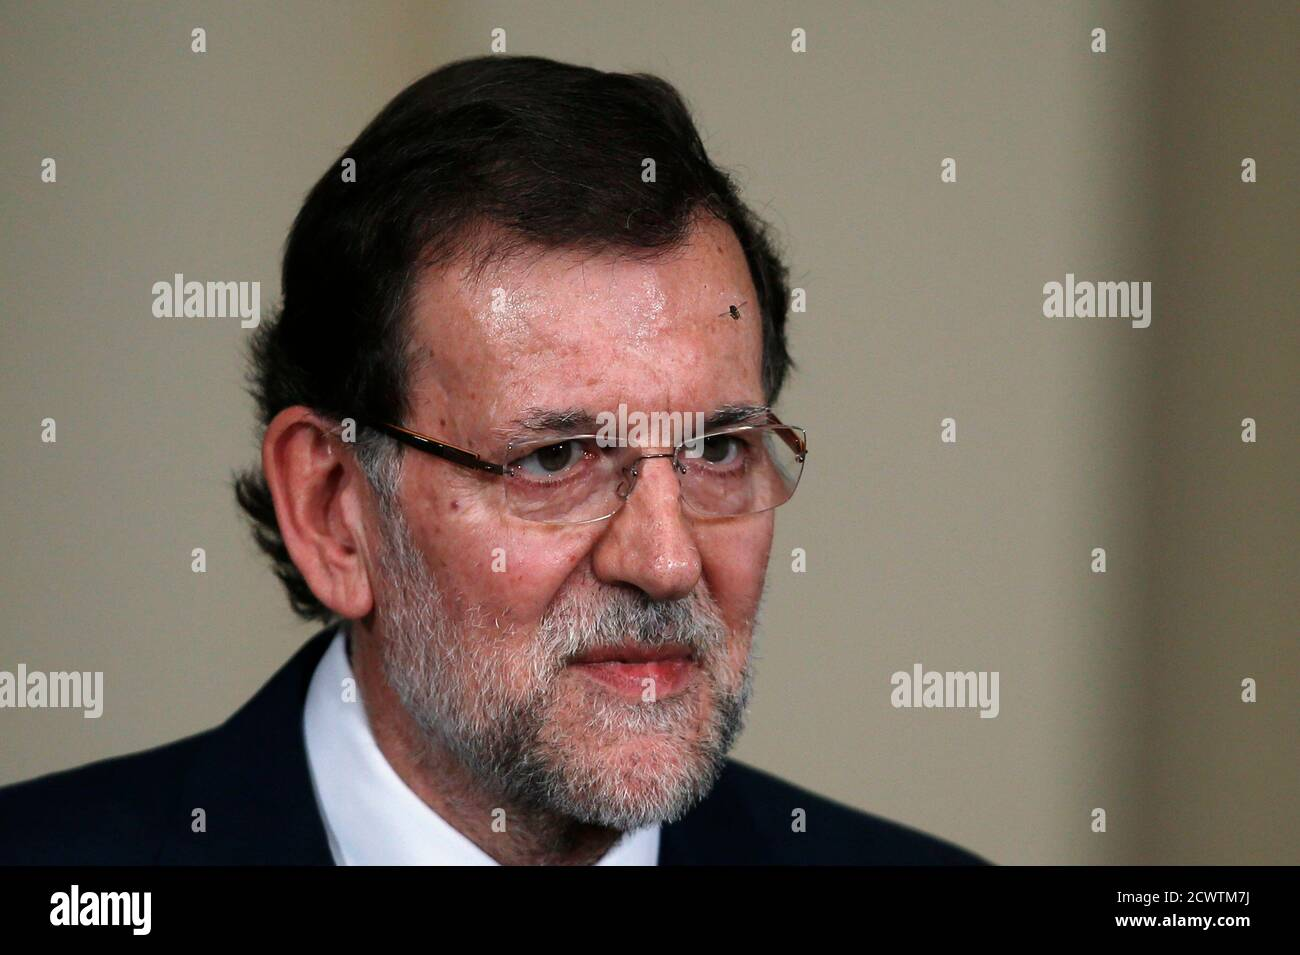 Spain's Prime Minister Mariano Rajoy attends a presentation on social action entities at the Moncloa Palace in Madrid July 11, 2013. Spain's Prime Minister Mariano Rajoy may take a pounding from fresh corruption allegations against his People's Party but the government is strong enough to ride the storm, analysts and sources say. REUTERS/Juan Medina (SPAIN - Tags: POLITICS HEADSHOT) Foto de stock